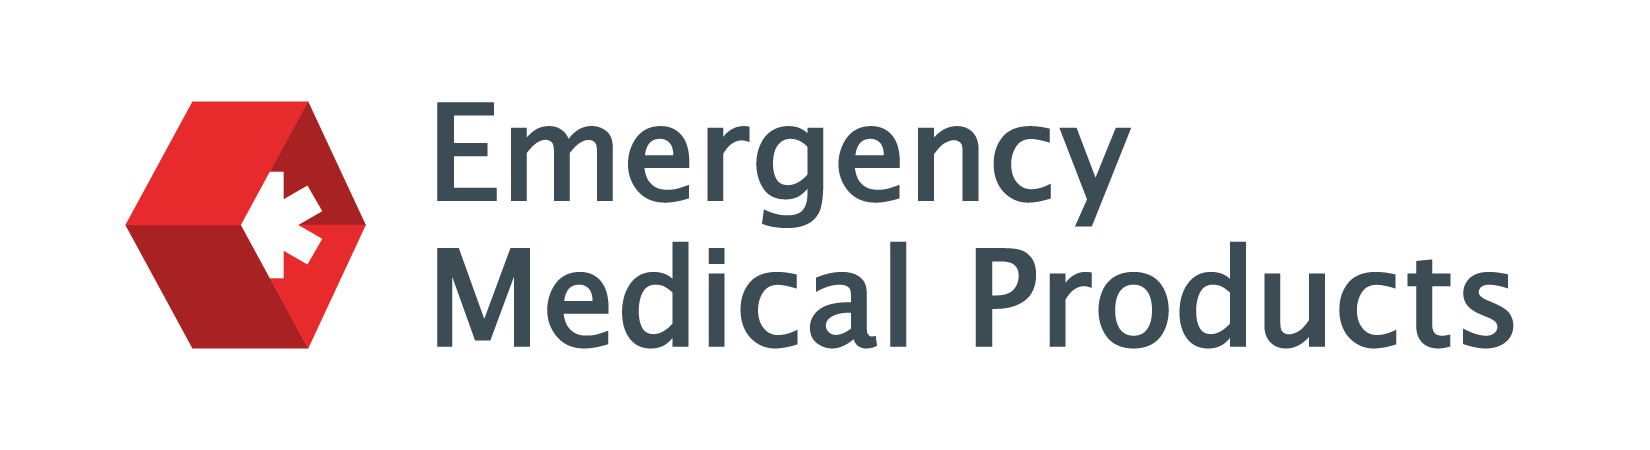 Emergency Medical Products logo image.